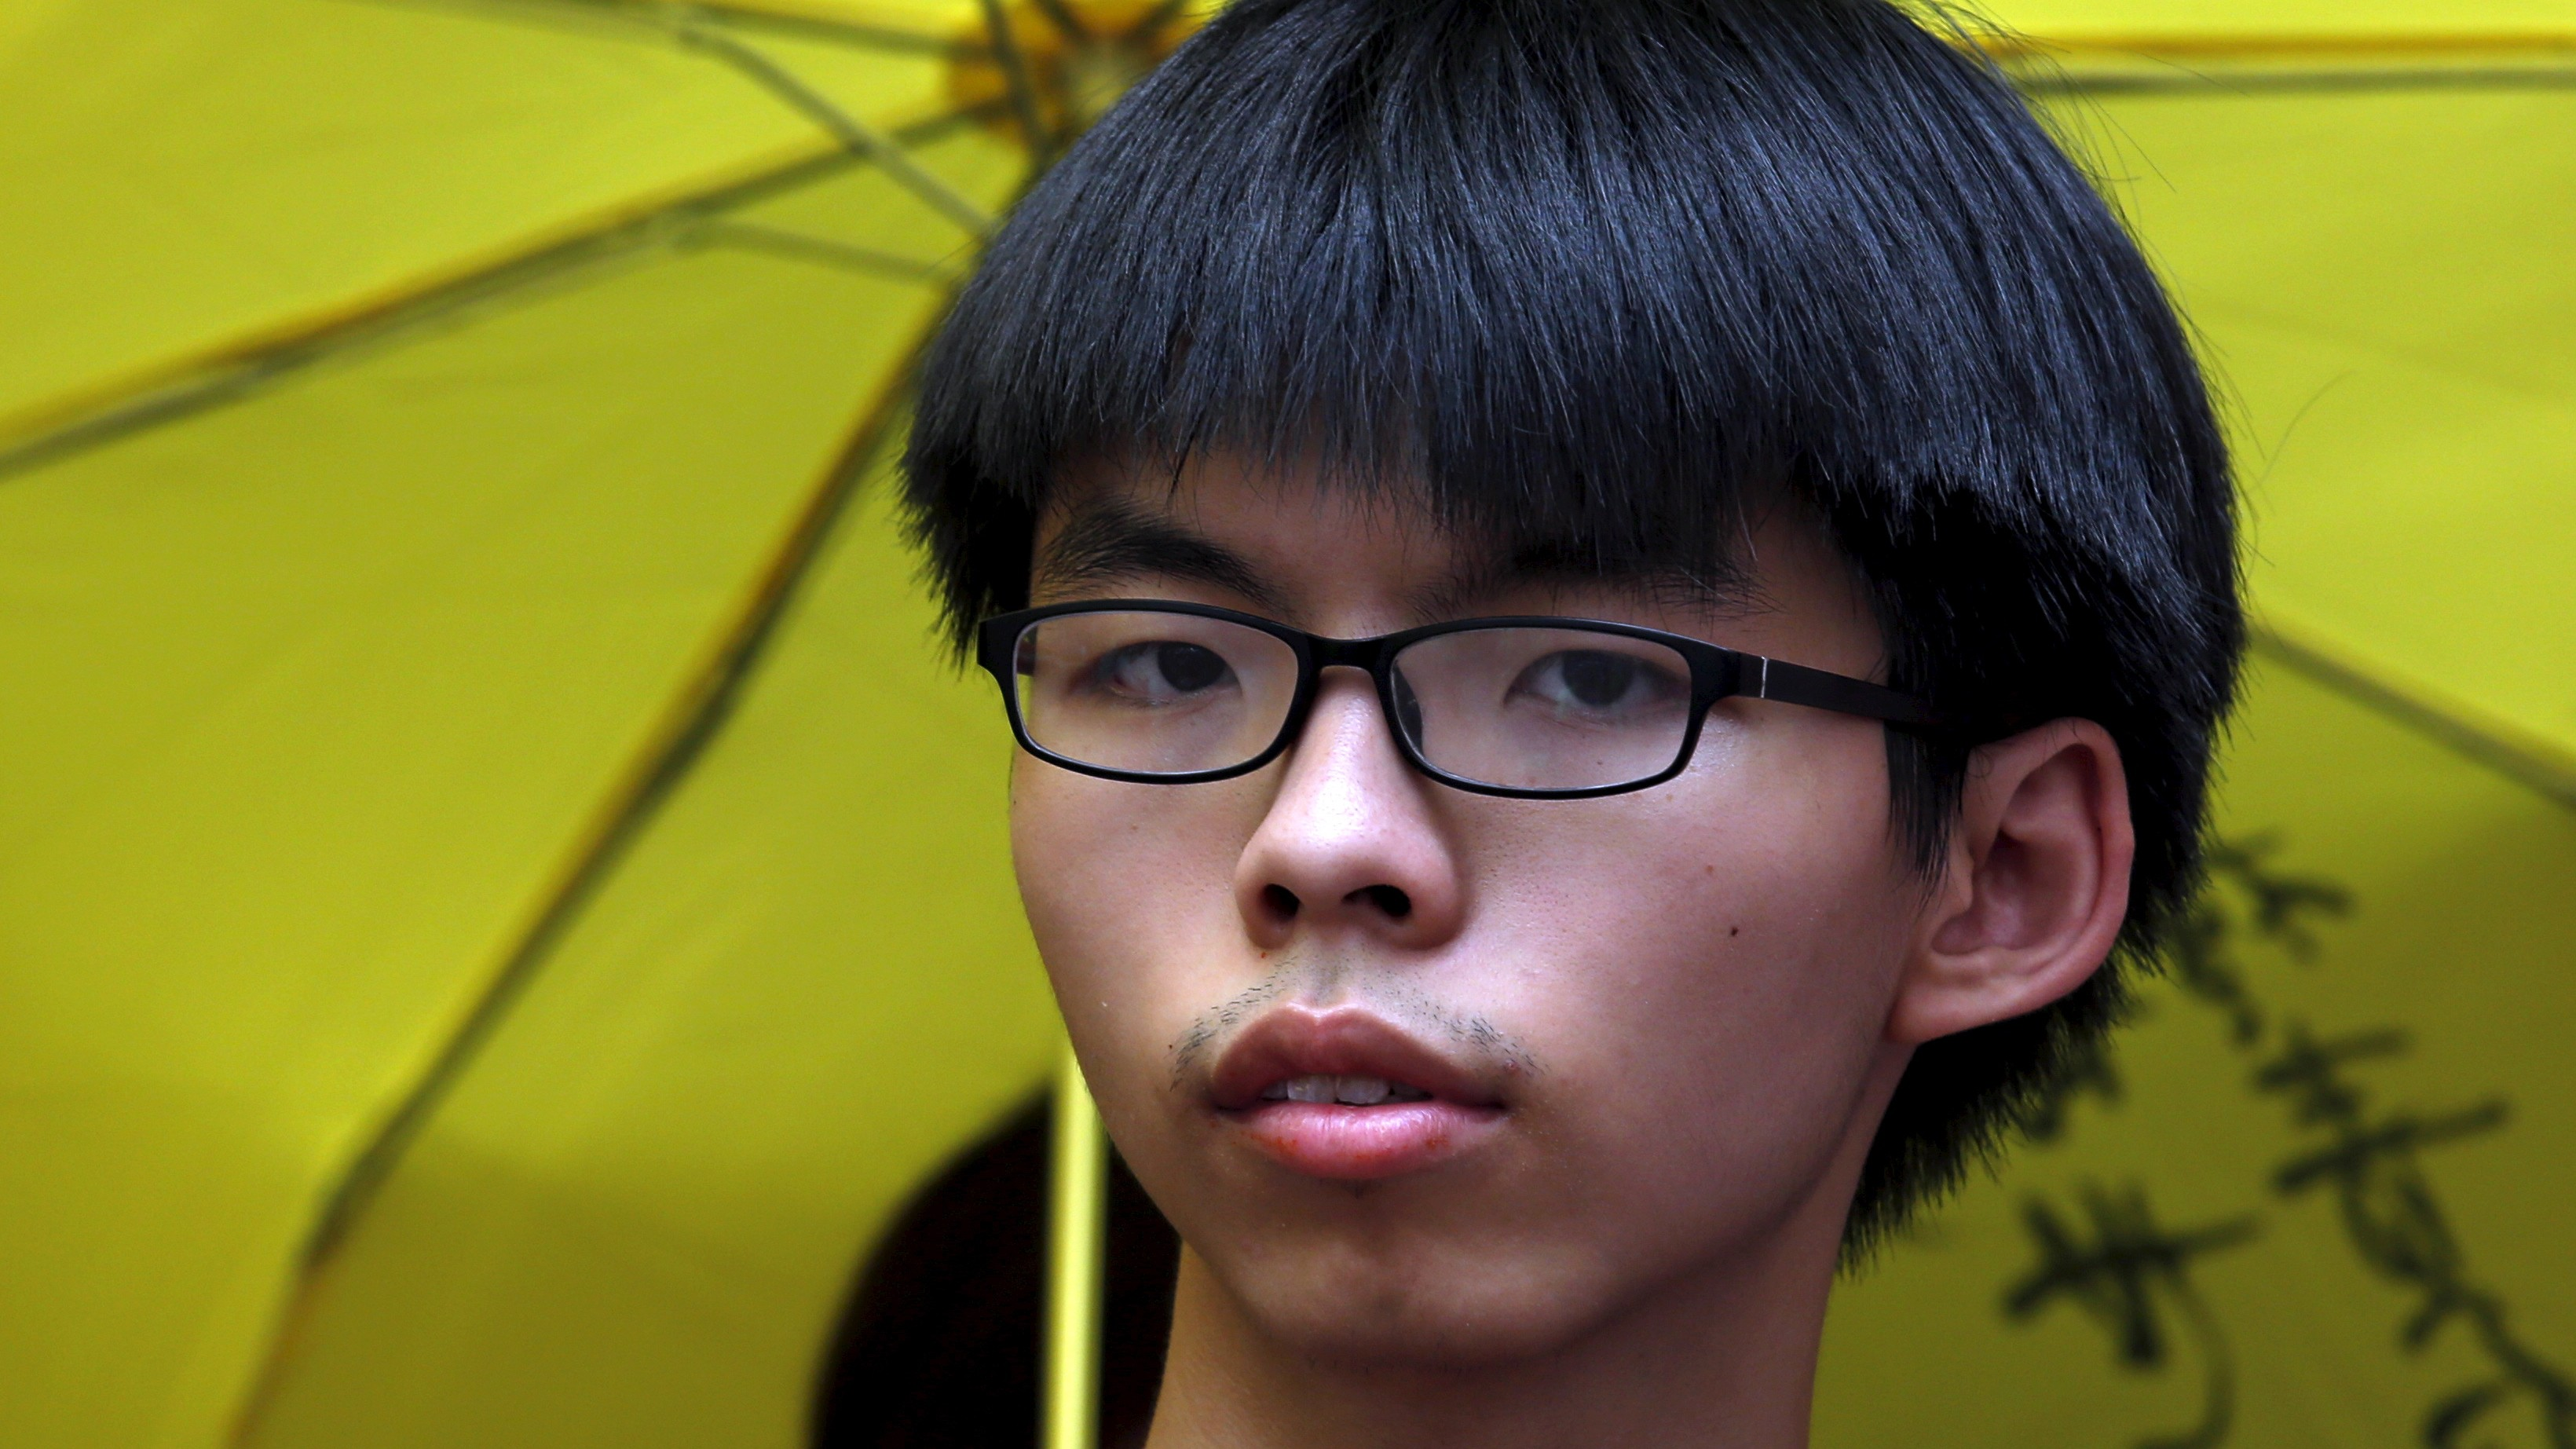 Student leader Joshua Wong stands in front of a supporter holding a yellow umbrella, symbol of the Occupy Central movement, outside a police station in Hong Kong, China July 14, 2015. Wong and another student leader Nathan Law reported to the police on Tuesday, expected to be charged with obstructing police officers during a protest outside China Liaison Office in 2014. REUTERS/Bobby Yip - RTX1K9JE